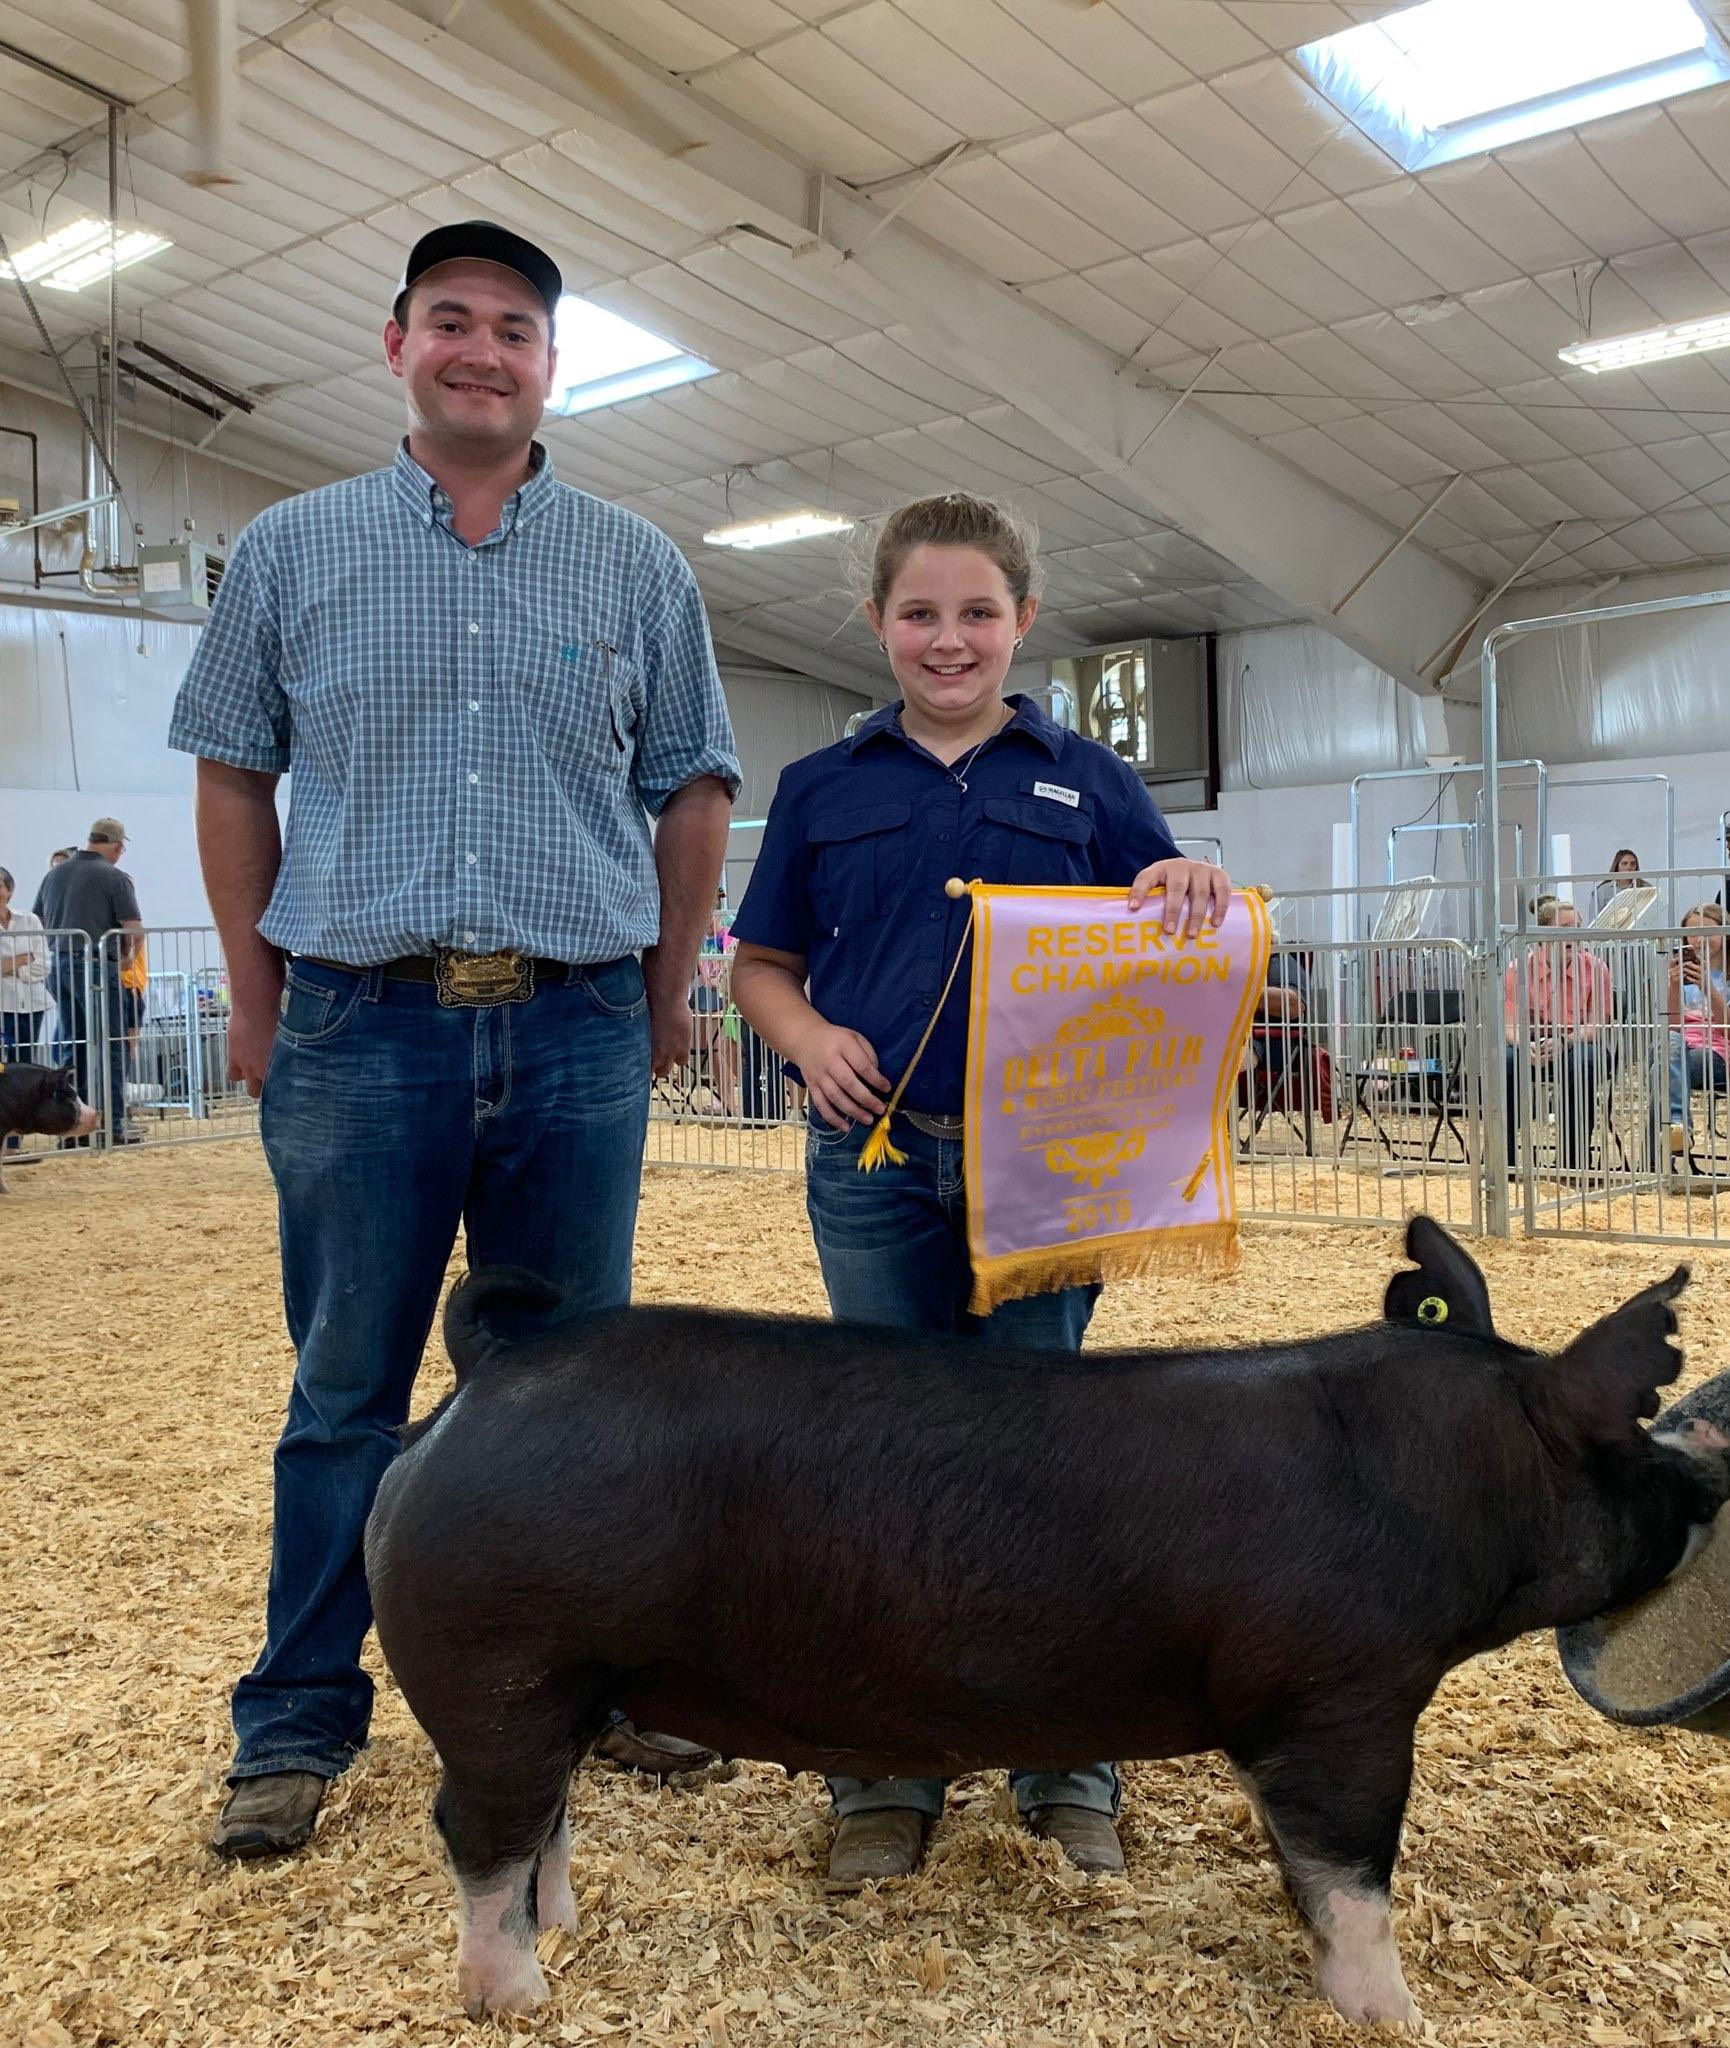 Ann Thomas Lowery 2019 Delta Fair & Music Festival Reserve Champion Berkshire Gilt (Day 2)